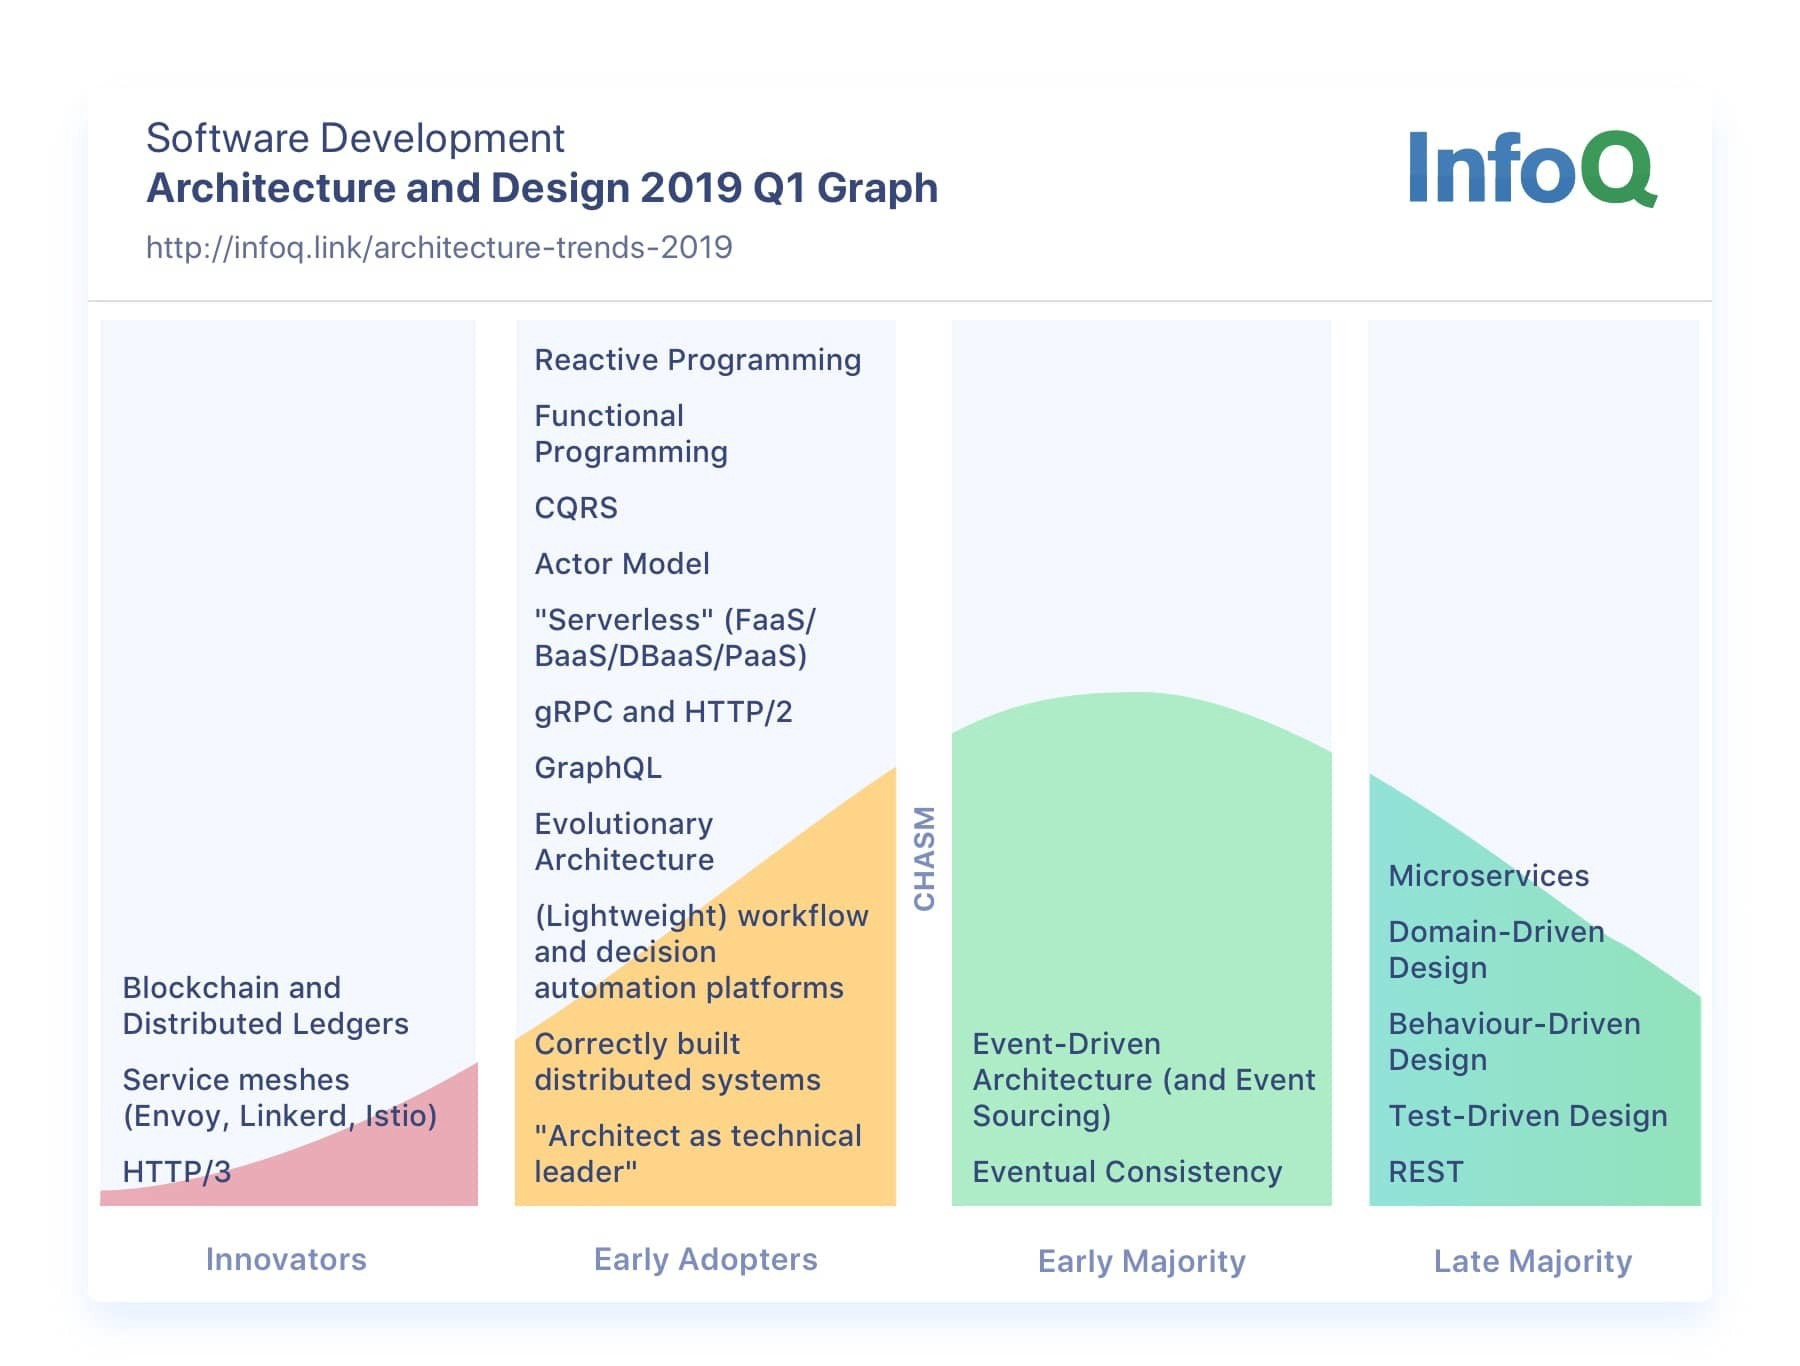 Top Data Engineering Trends for 2019 - Alina GHERMAN - Medium